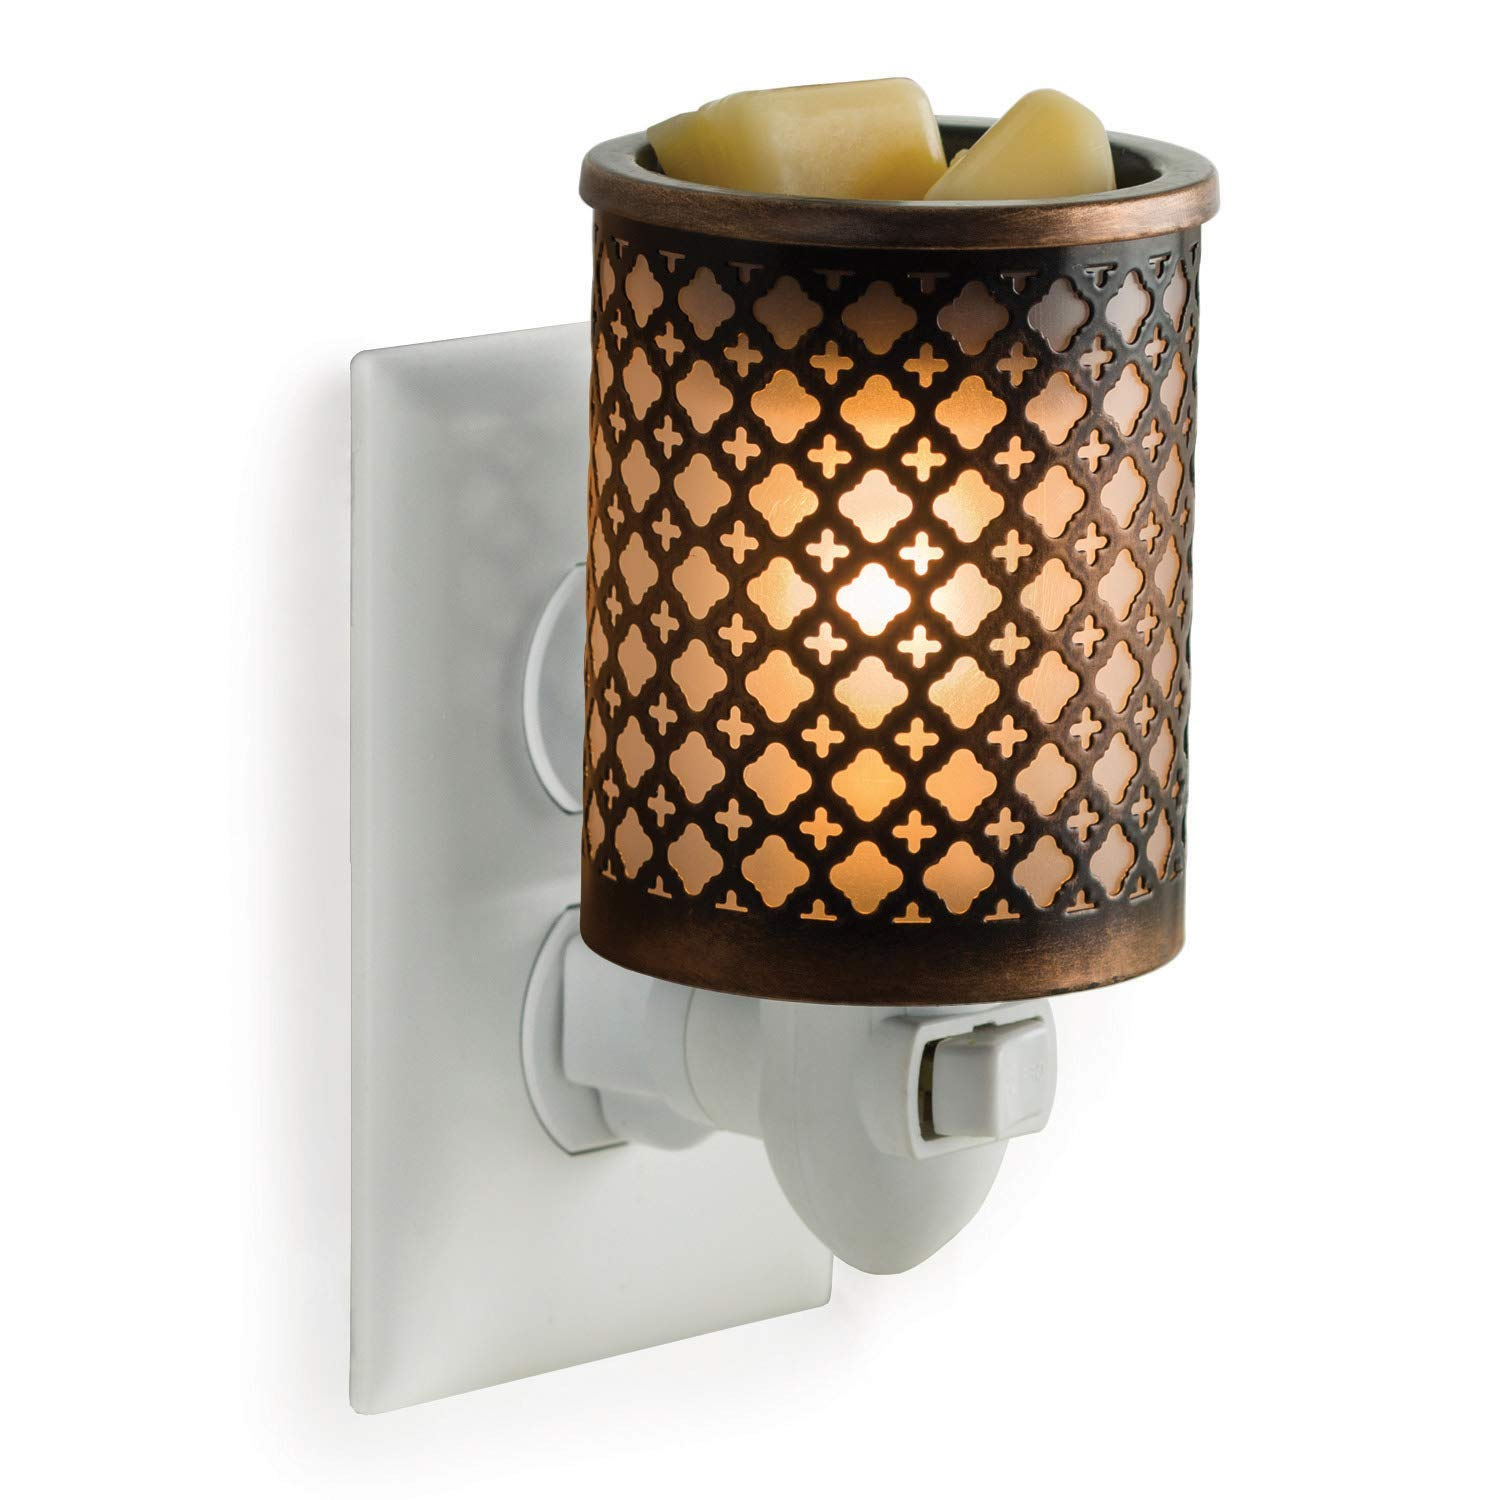 CANDLE WARMERS ETC Pluggable Fragrance Warmer- Decorative Plug-in for Warming Scented Candle Wax Melts and Tarts or Essential Oils, Moroccan